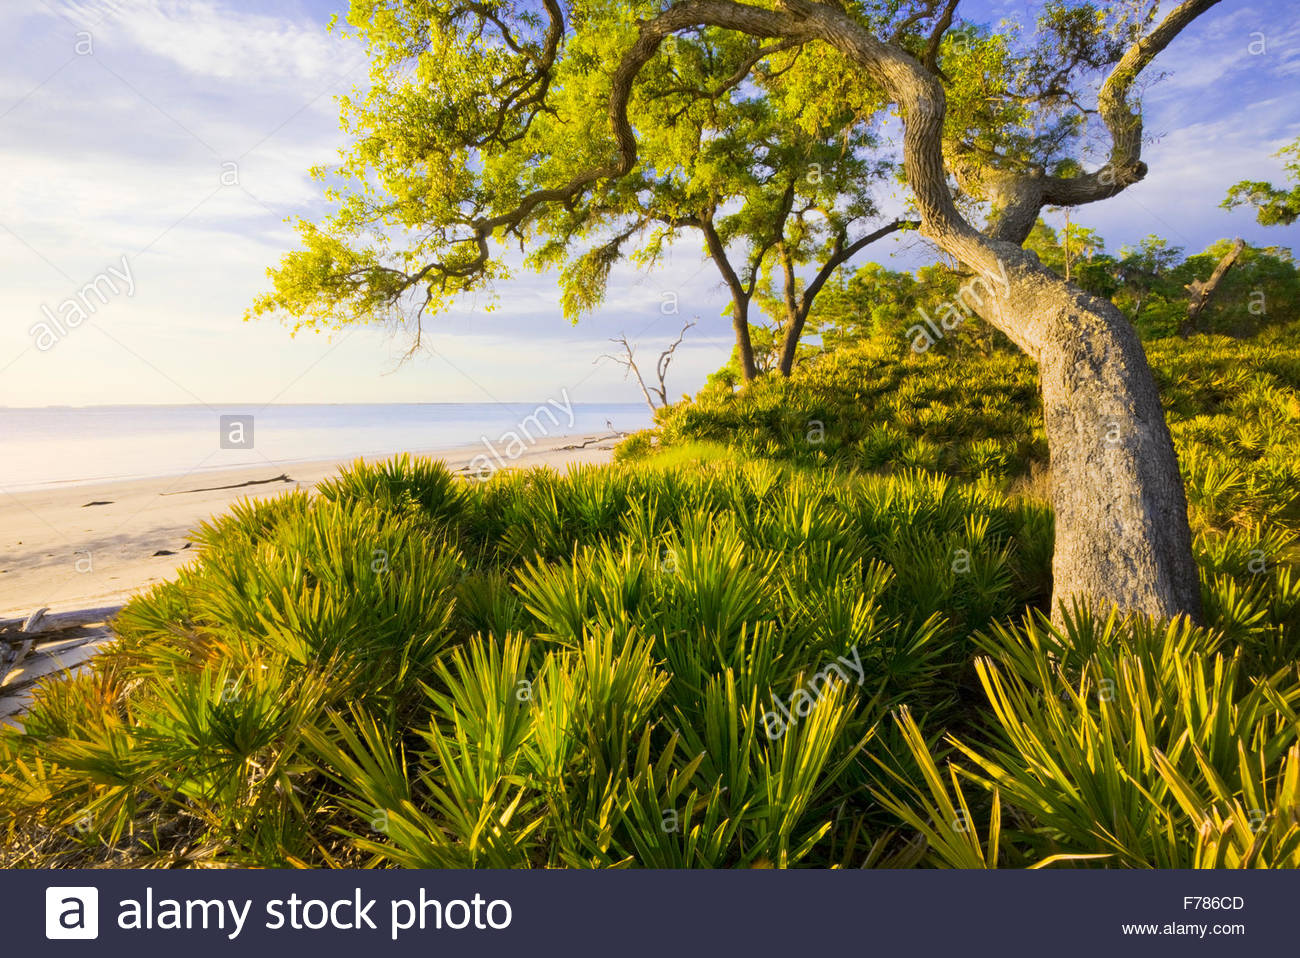 'Saw palmetto' and [Sand live oak] 'St. Catherine's Island' Georgia. - Stock Image